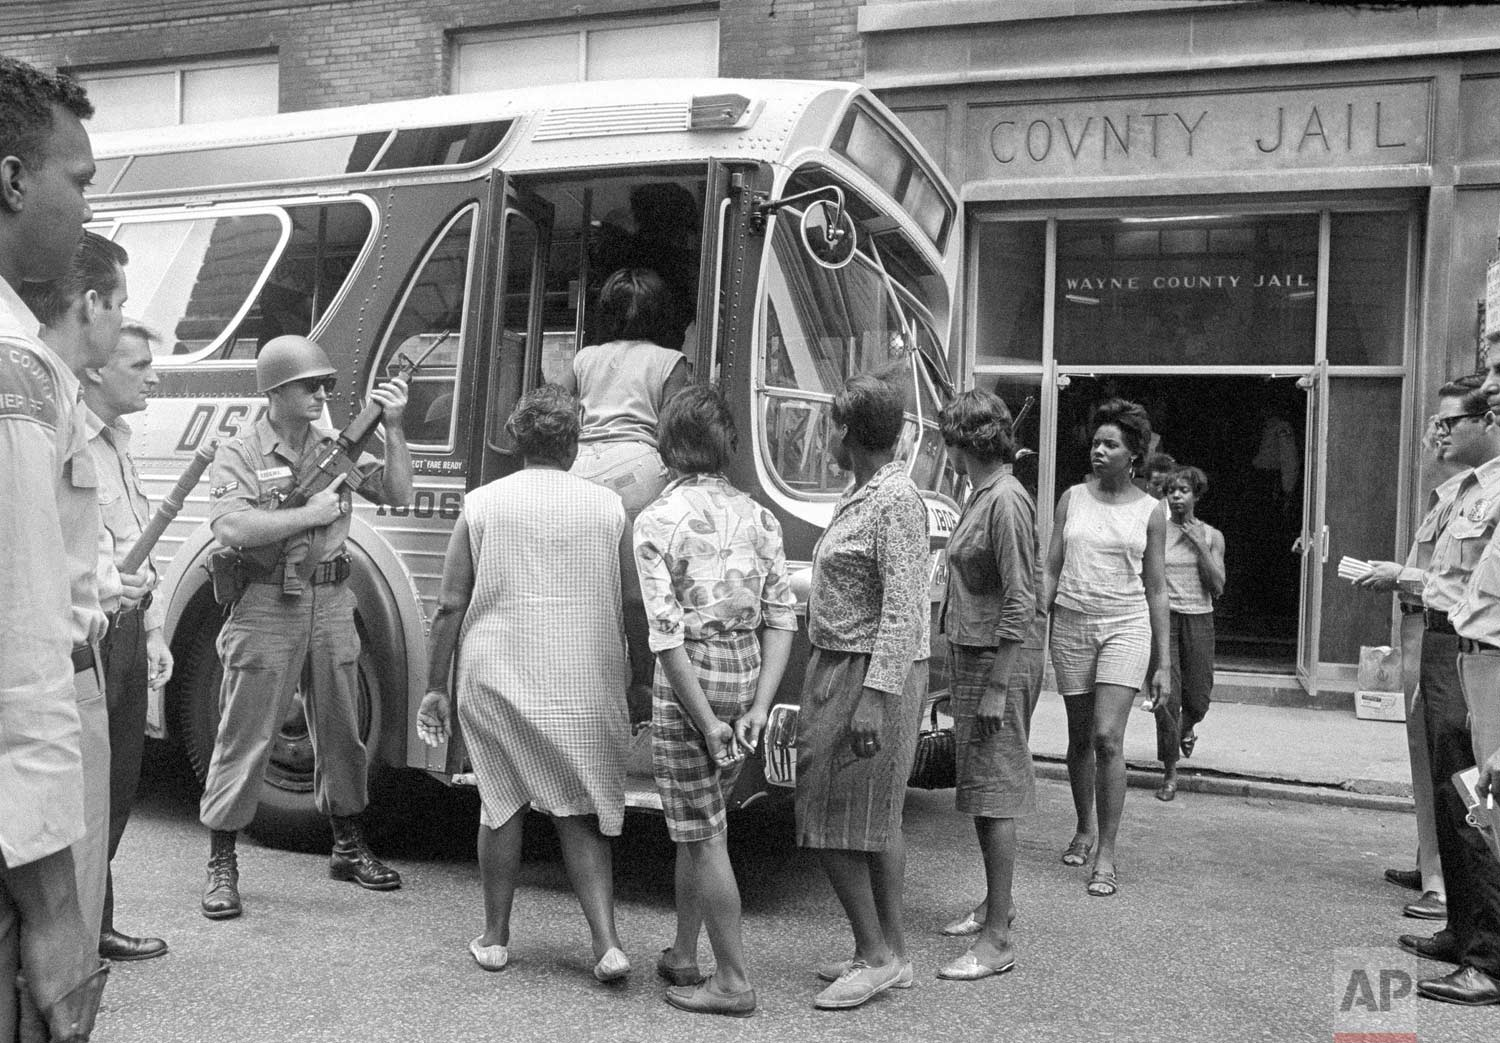 In this July 28, 1967 photo, female prisoners arrested during the rioting in Detroit, board a bus at Wayne County Jail, watched by National Guardsmen for transfer to Eloise, a detention home for women on the edge of the city. Mass arrests of men, women and juveniles had taxed jail facilities in the city. (AP Photo)